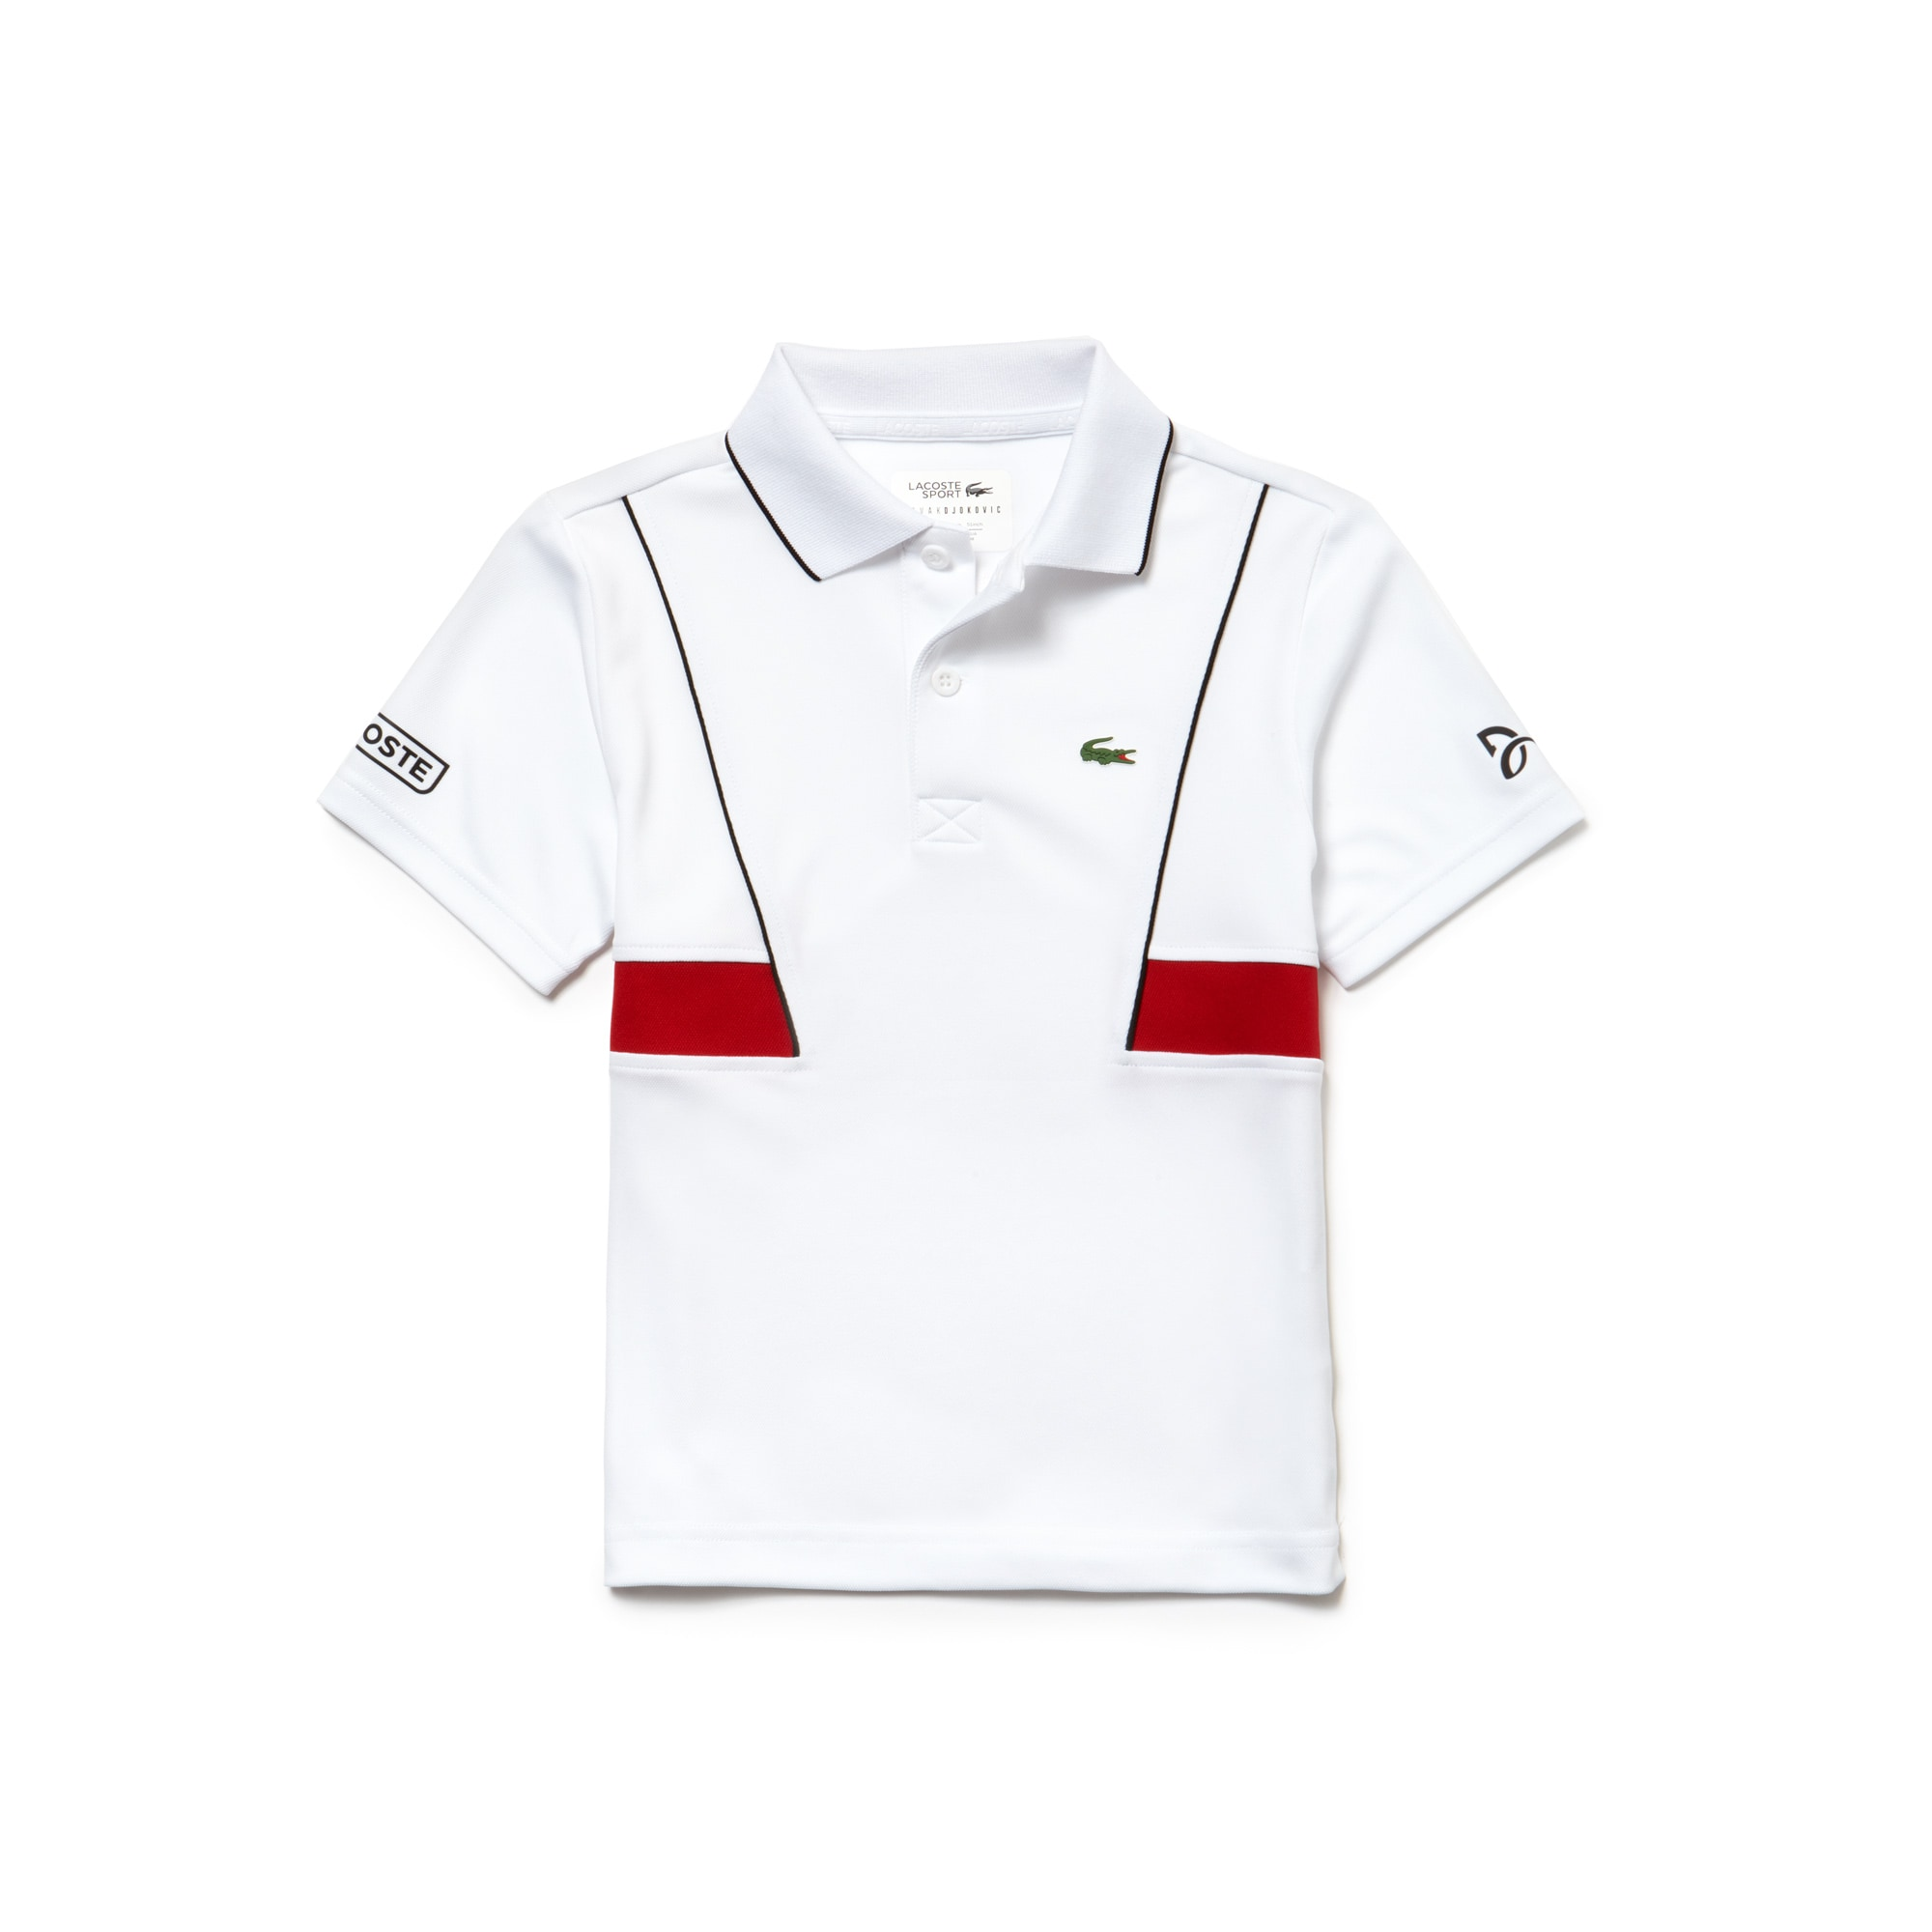 Boys' LACOSTE SPORT NOVAK DJOKOVIC COLLECTION Technical Piqué Polo Shirt